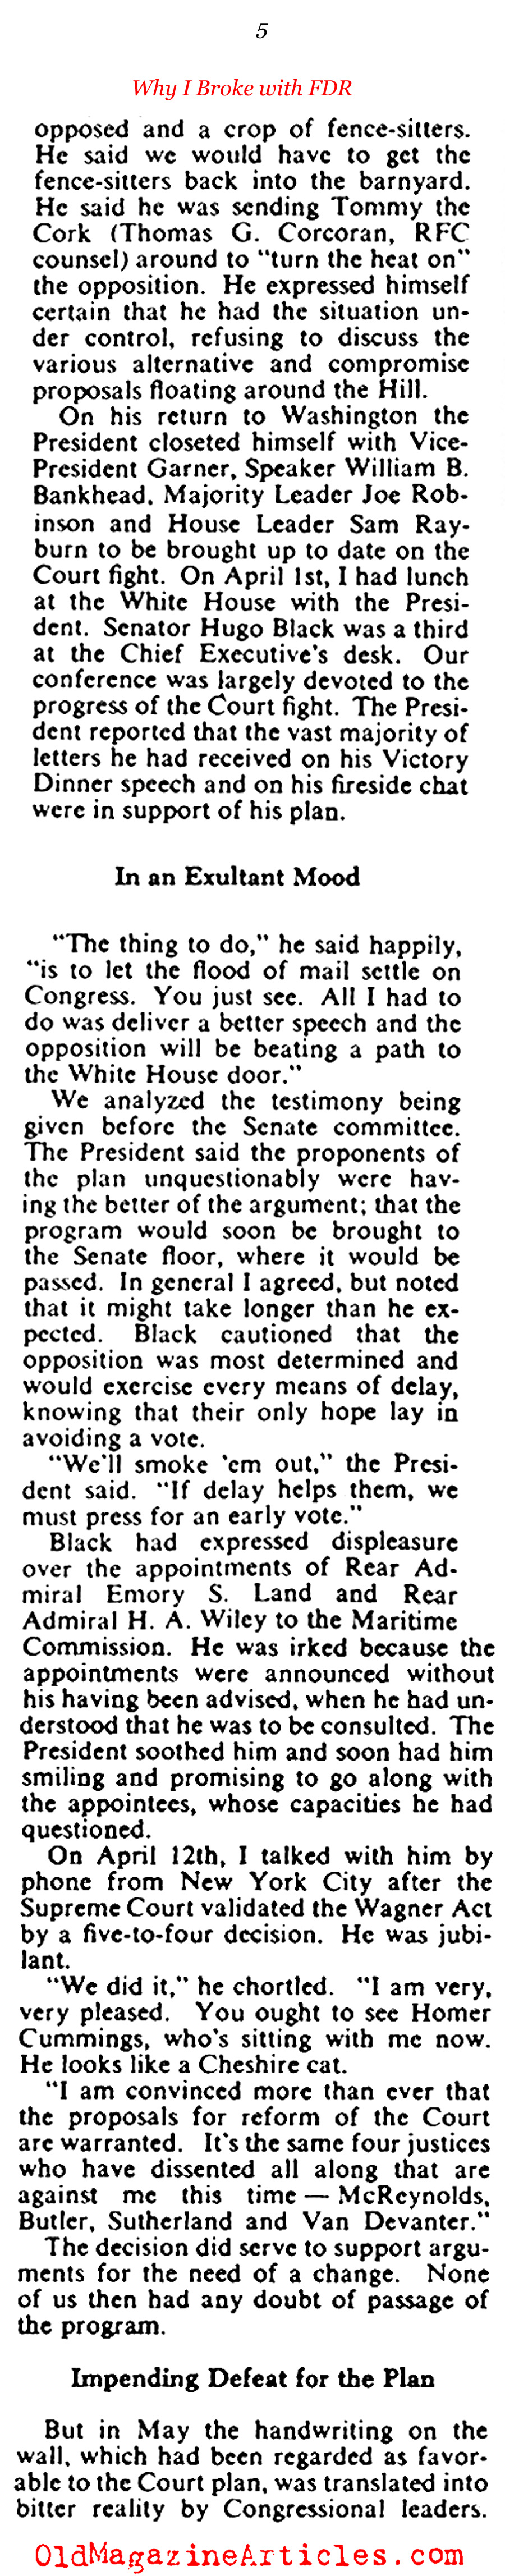 FDR, Congress and the Plan to Pack the Supreme Court (Collier's Magazine, 1947)